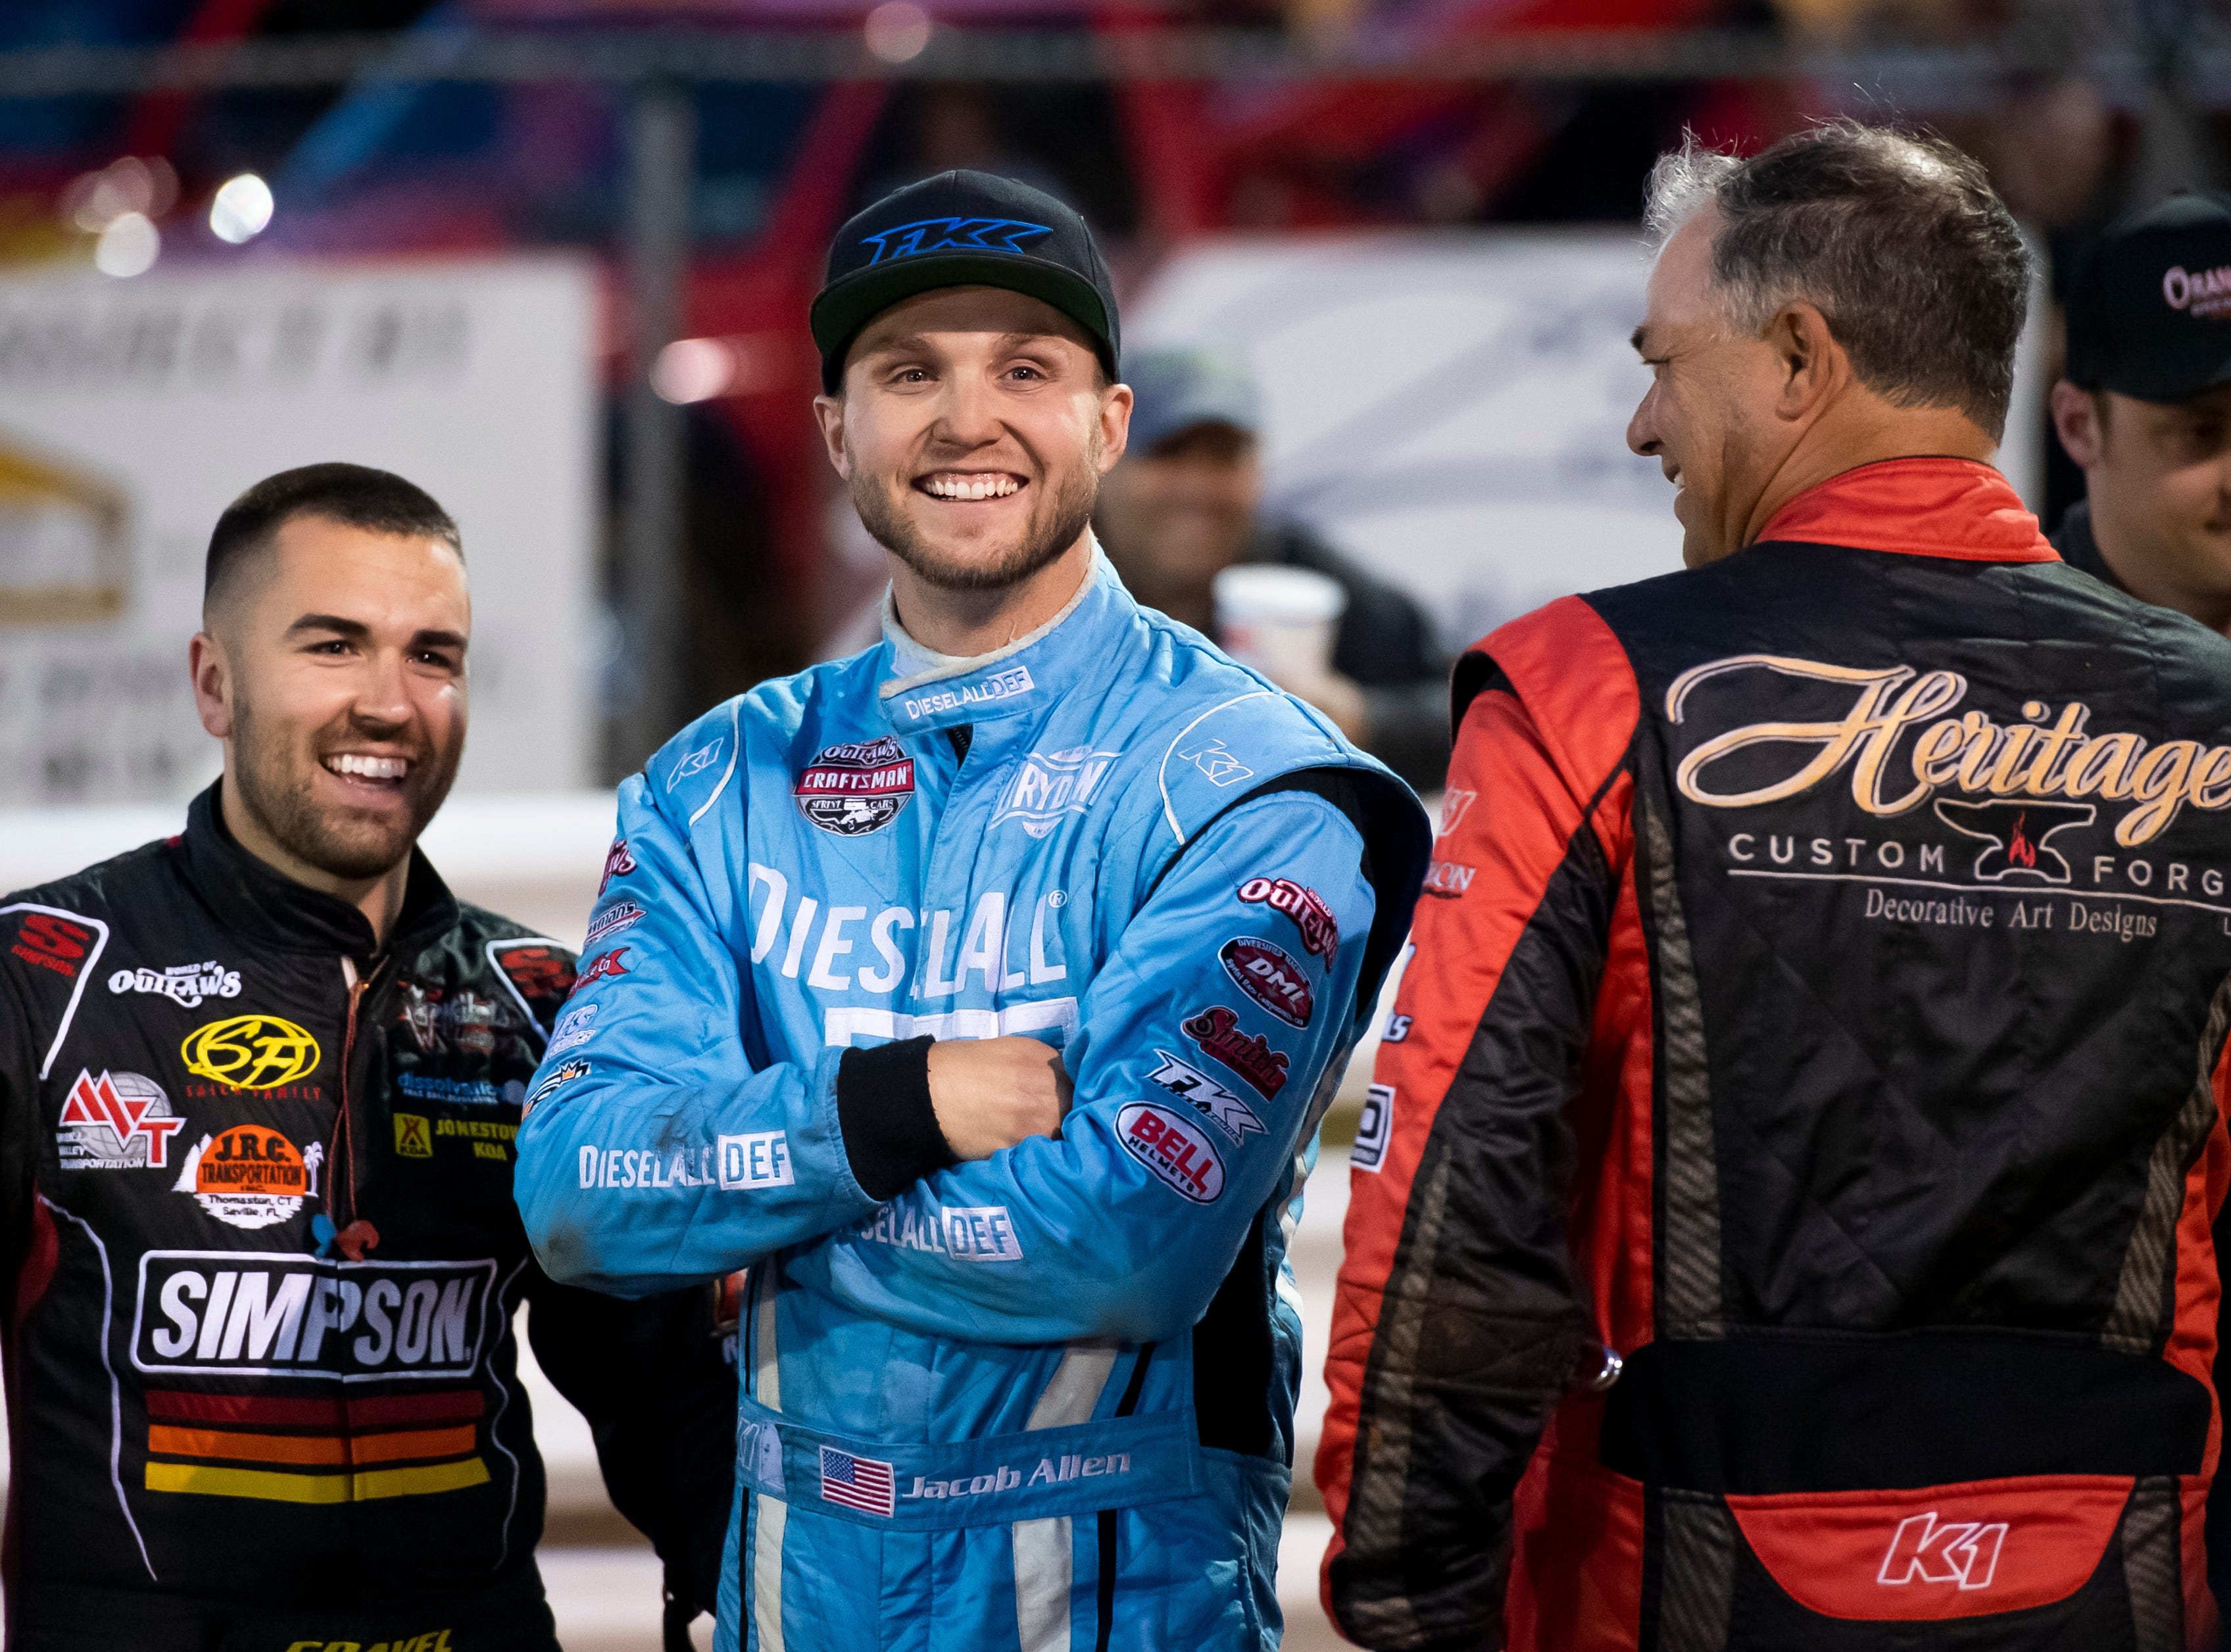 David Gravel, left, and Jacob Allen laugh along with Lance Dewease (right) after Dewease pulled the pole position for the fast pass dash during the World of Outlaws Gettysburg Clash at Lincoln Speedway in Abbottstown on Wednesday, May 15, 2019.